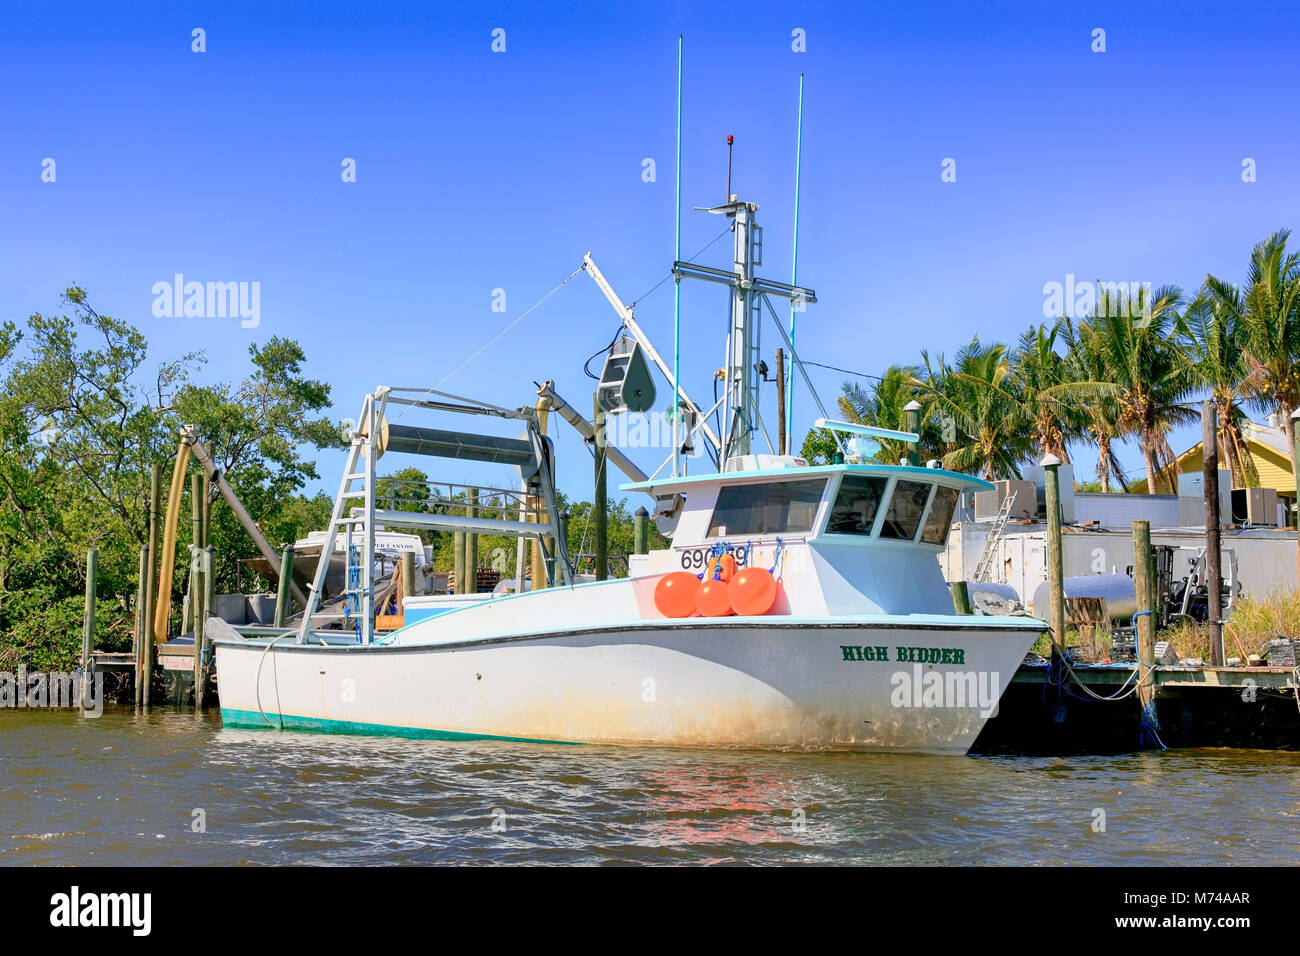 Shrimp boat gulf of mexico stock photos shrimp boat gulf for Stock fish for sale texas